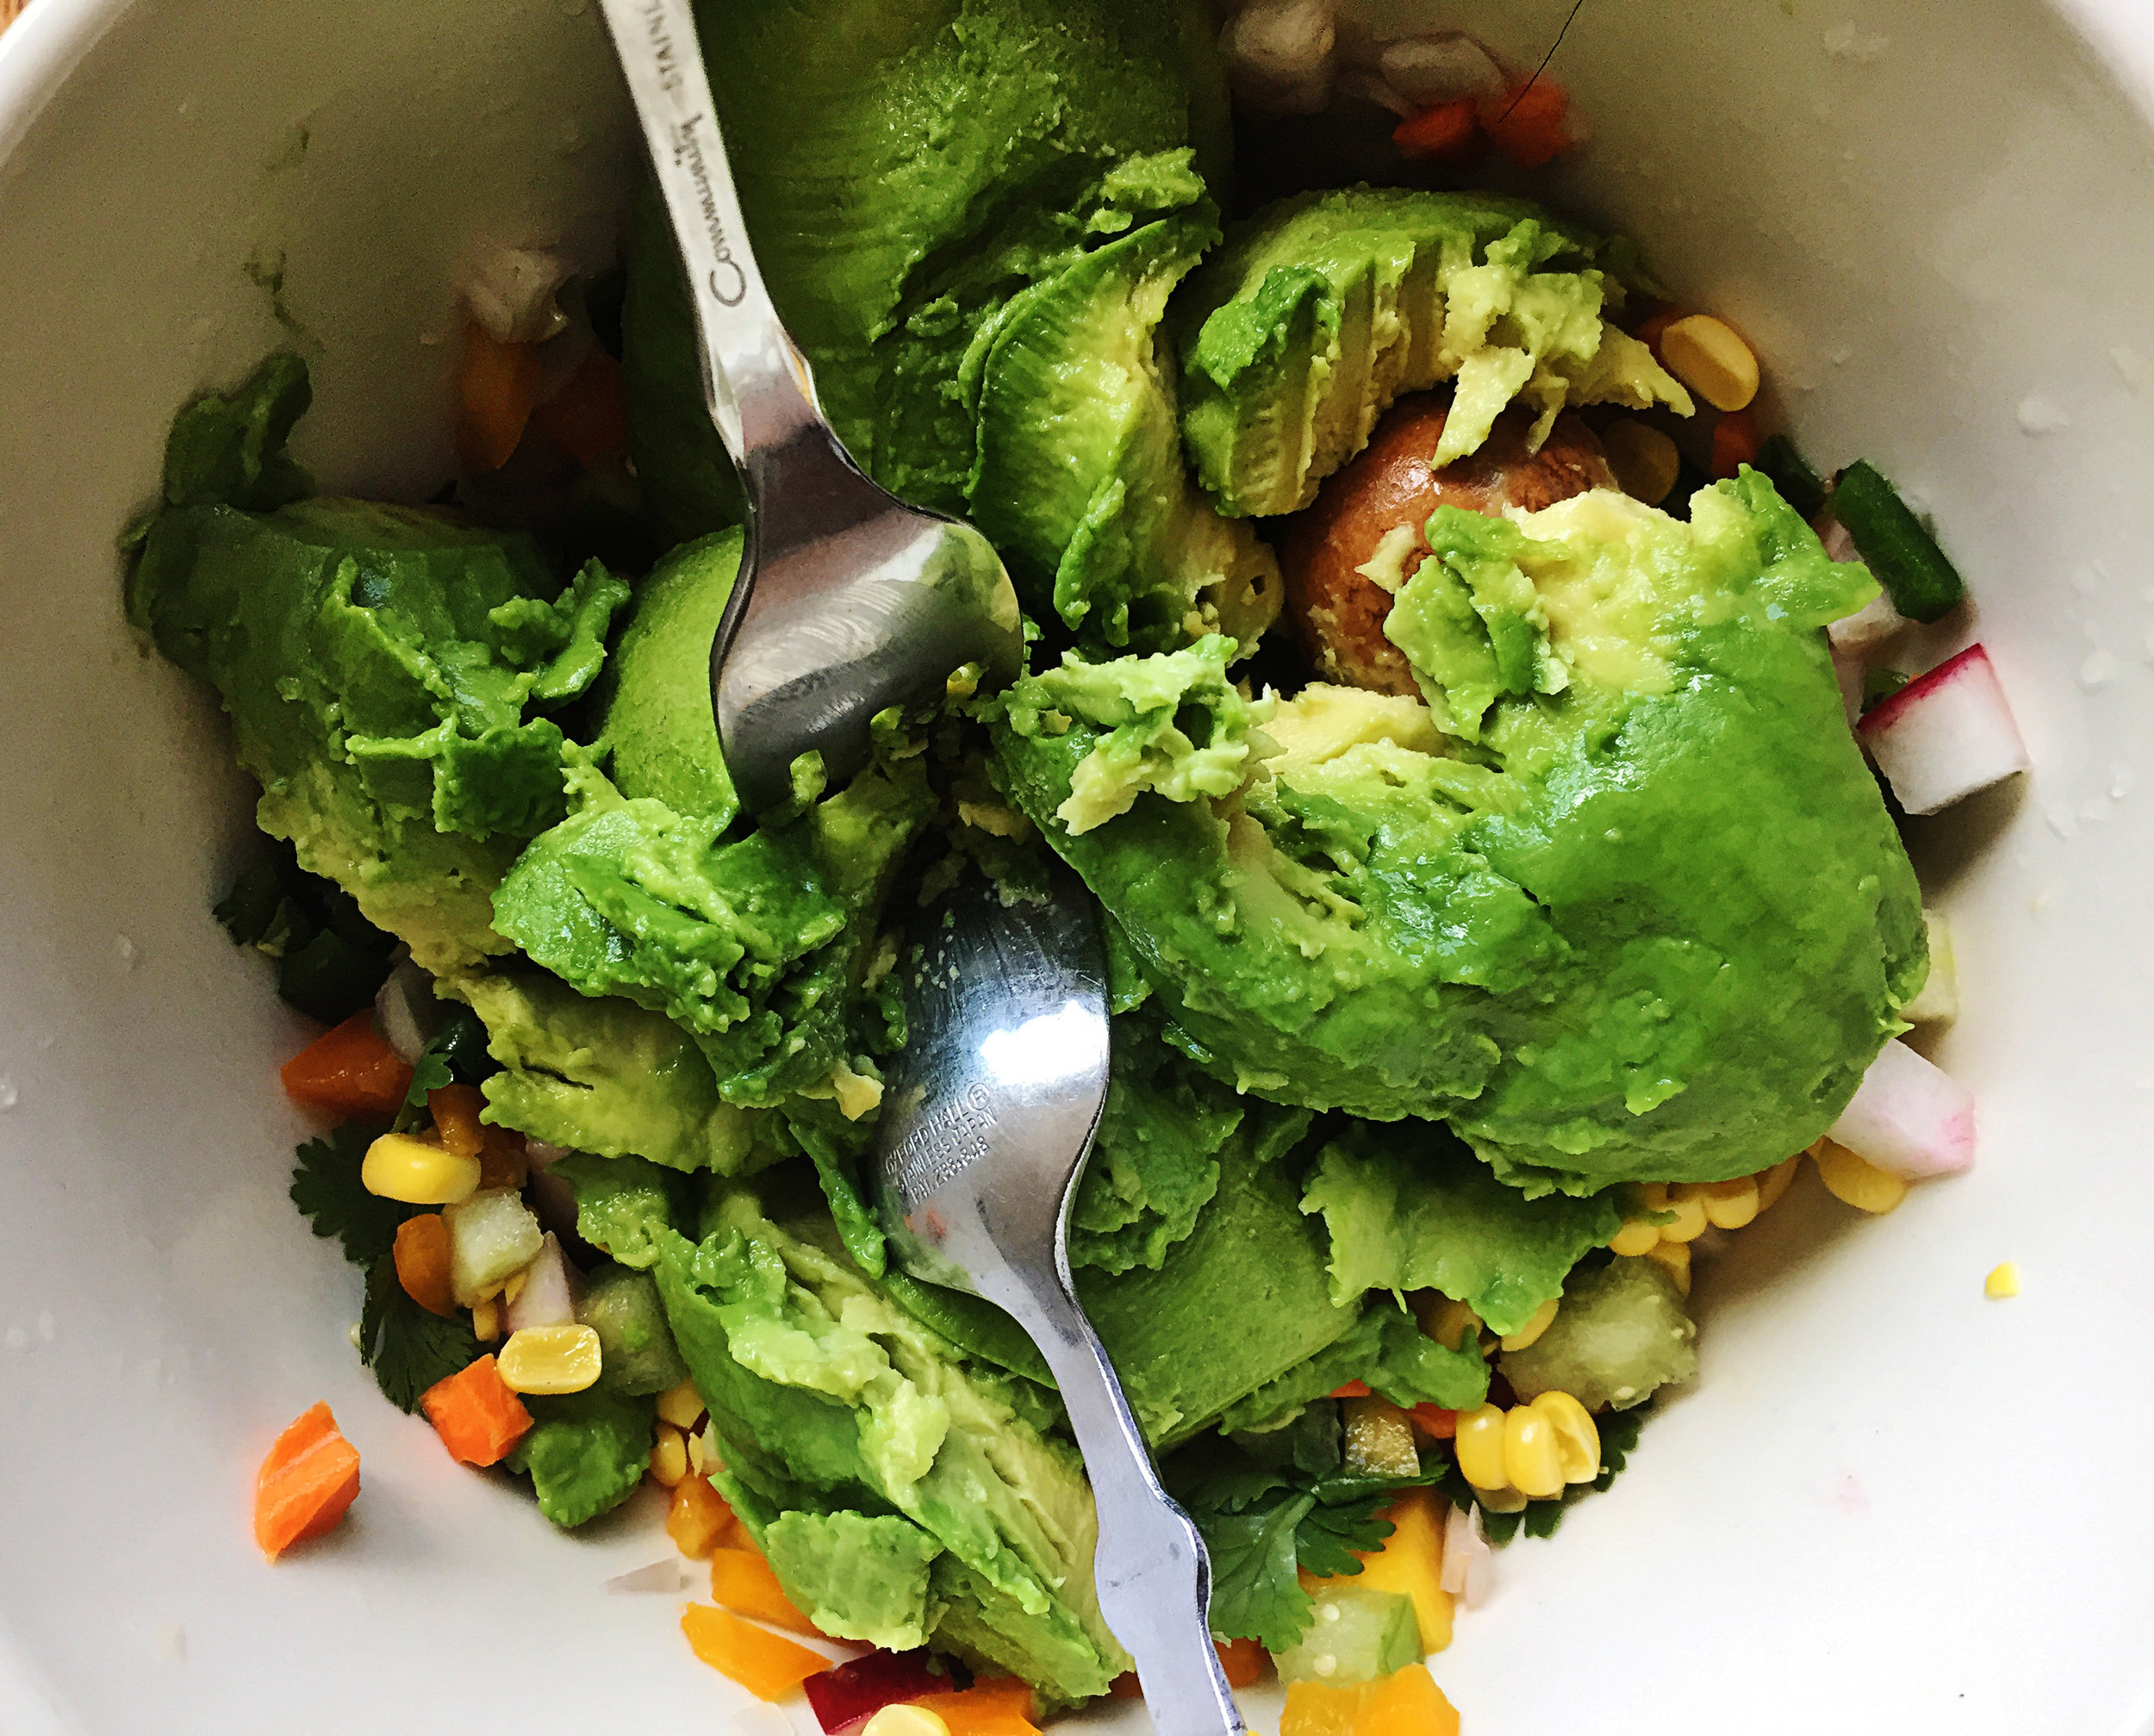 3. Next add your avocados. Cut down the middle and squeeze out all the flesh and pits into the bowl. Grab a fork + spoon. Reverse the fork + spoon direction as you see above. Press down and push out. Continue to do this to break apart the avocado.